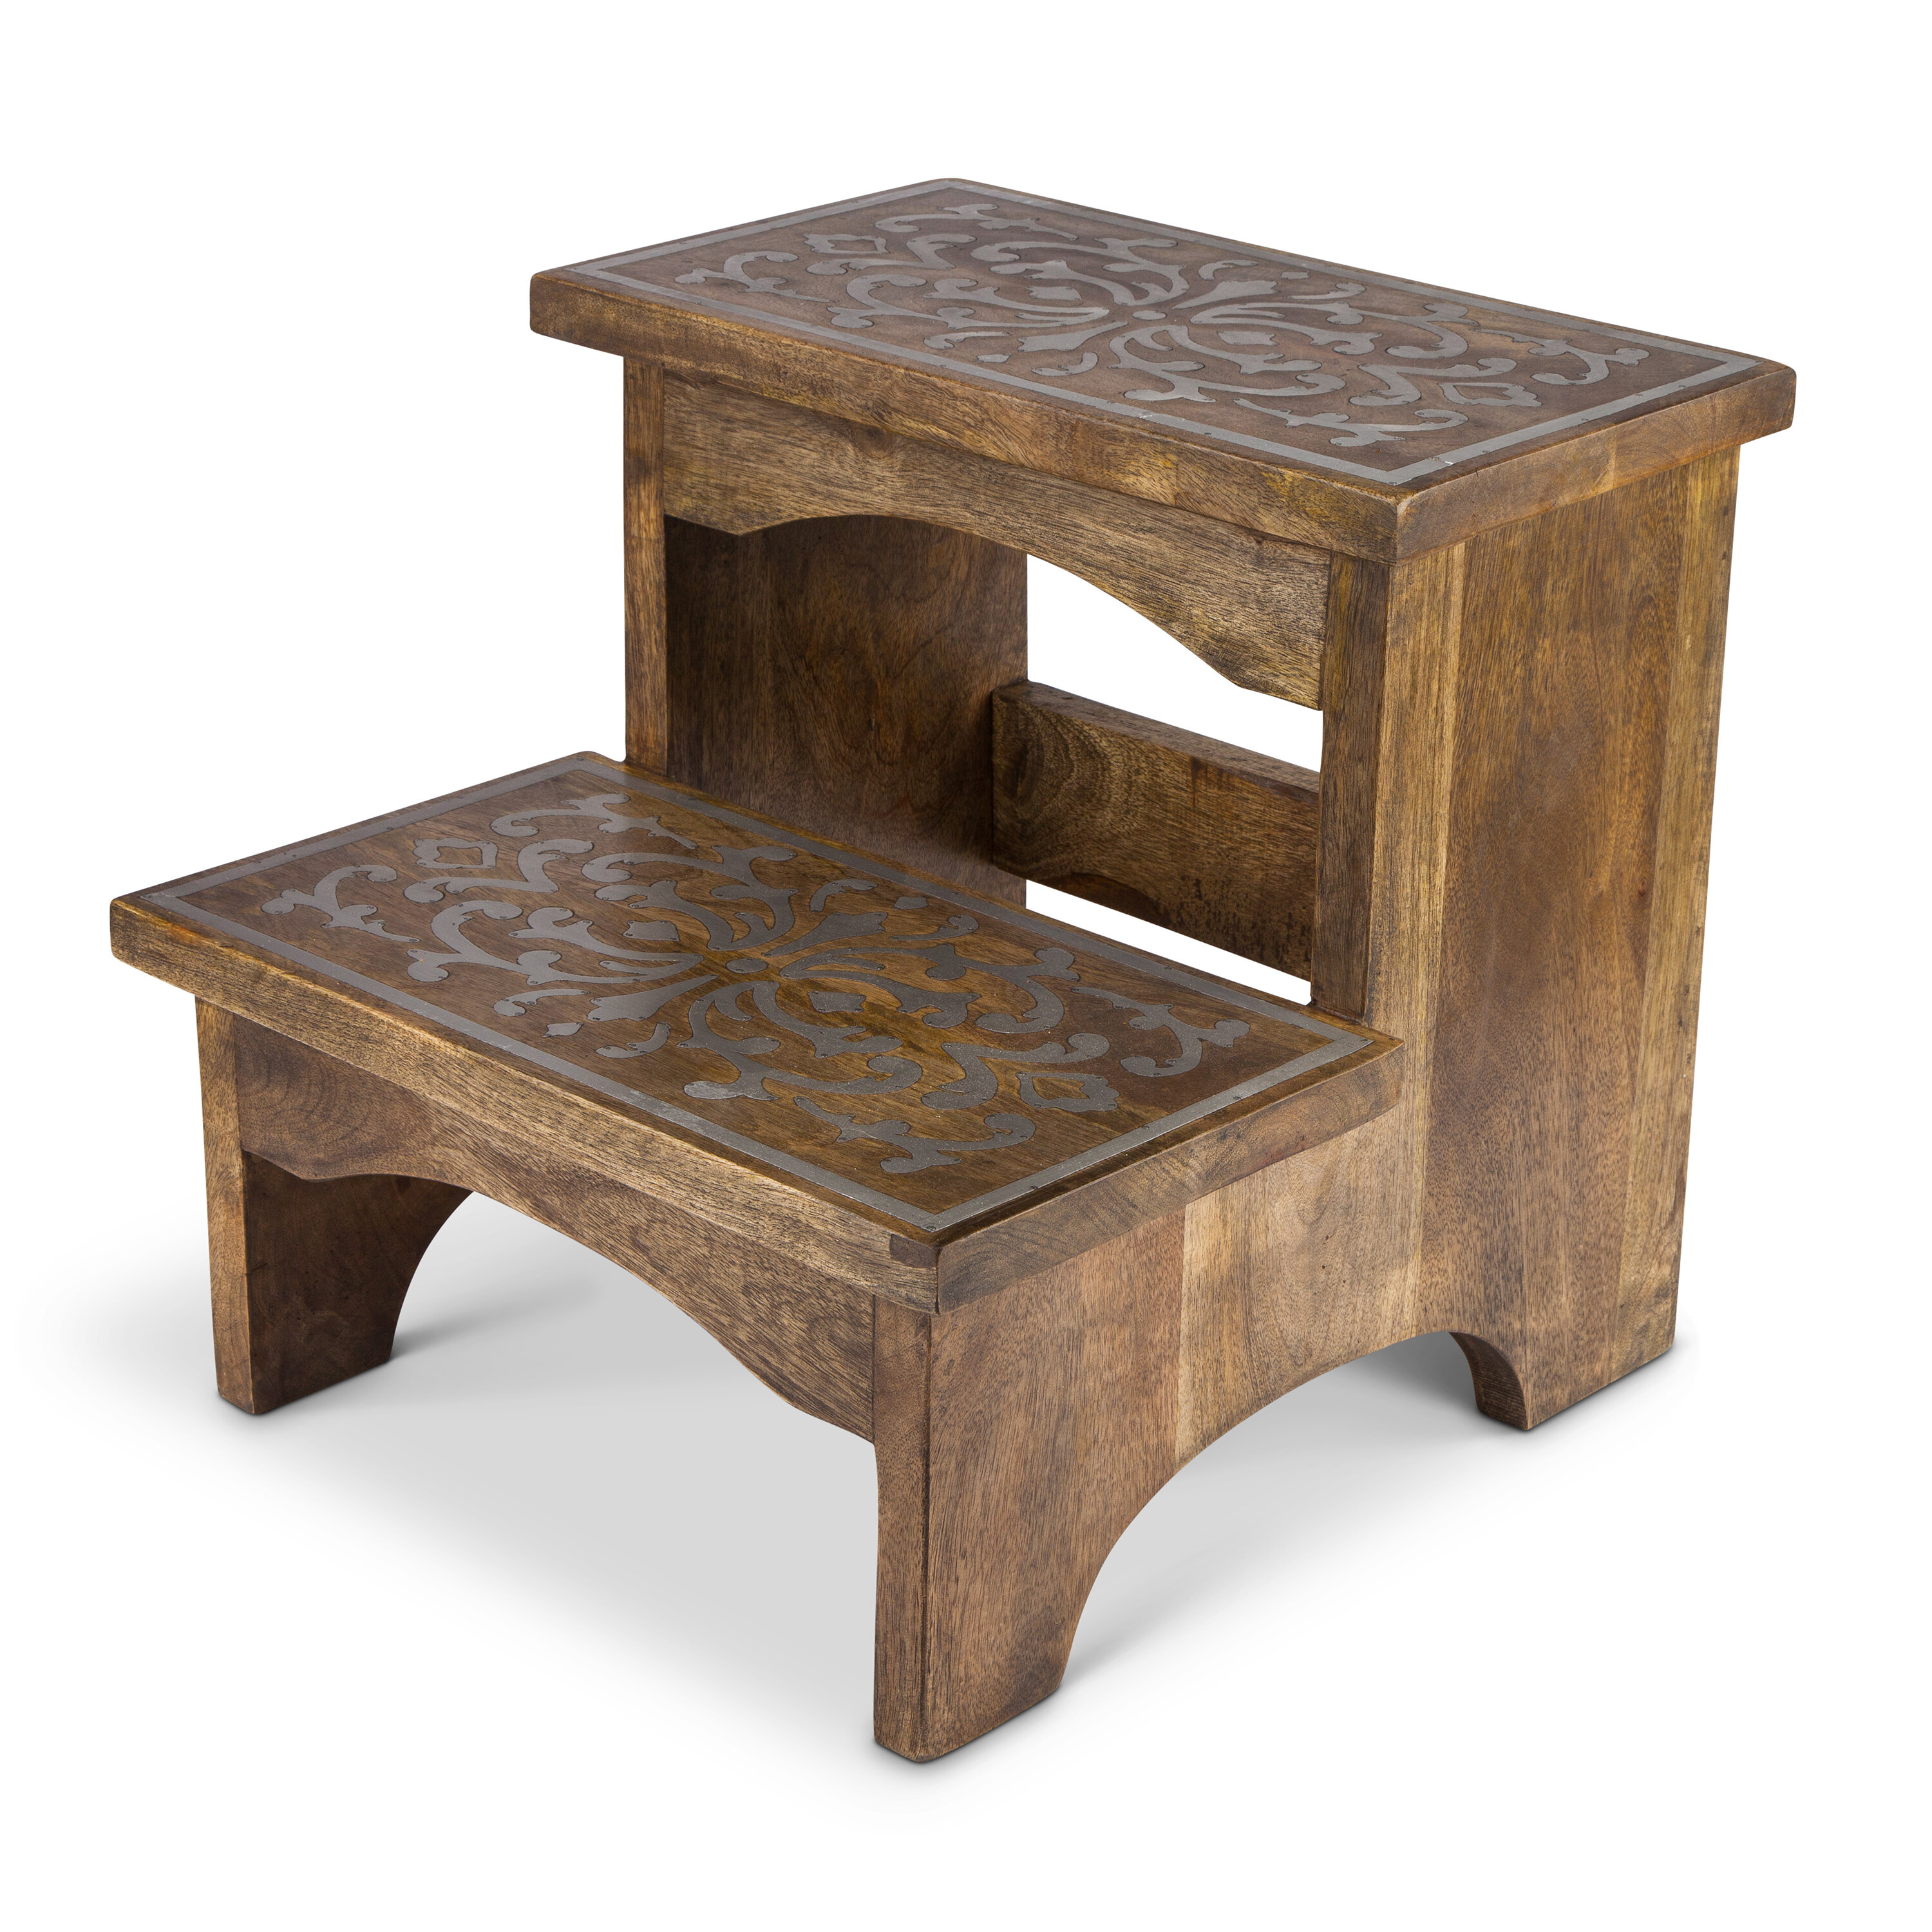 Superb Stampley 2 Step Wood Step Stool Caraccident5 Cool Chair Designs And Ideas Caraccident5Info